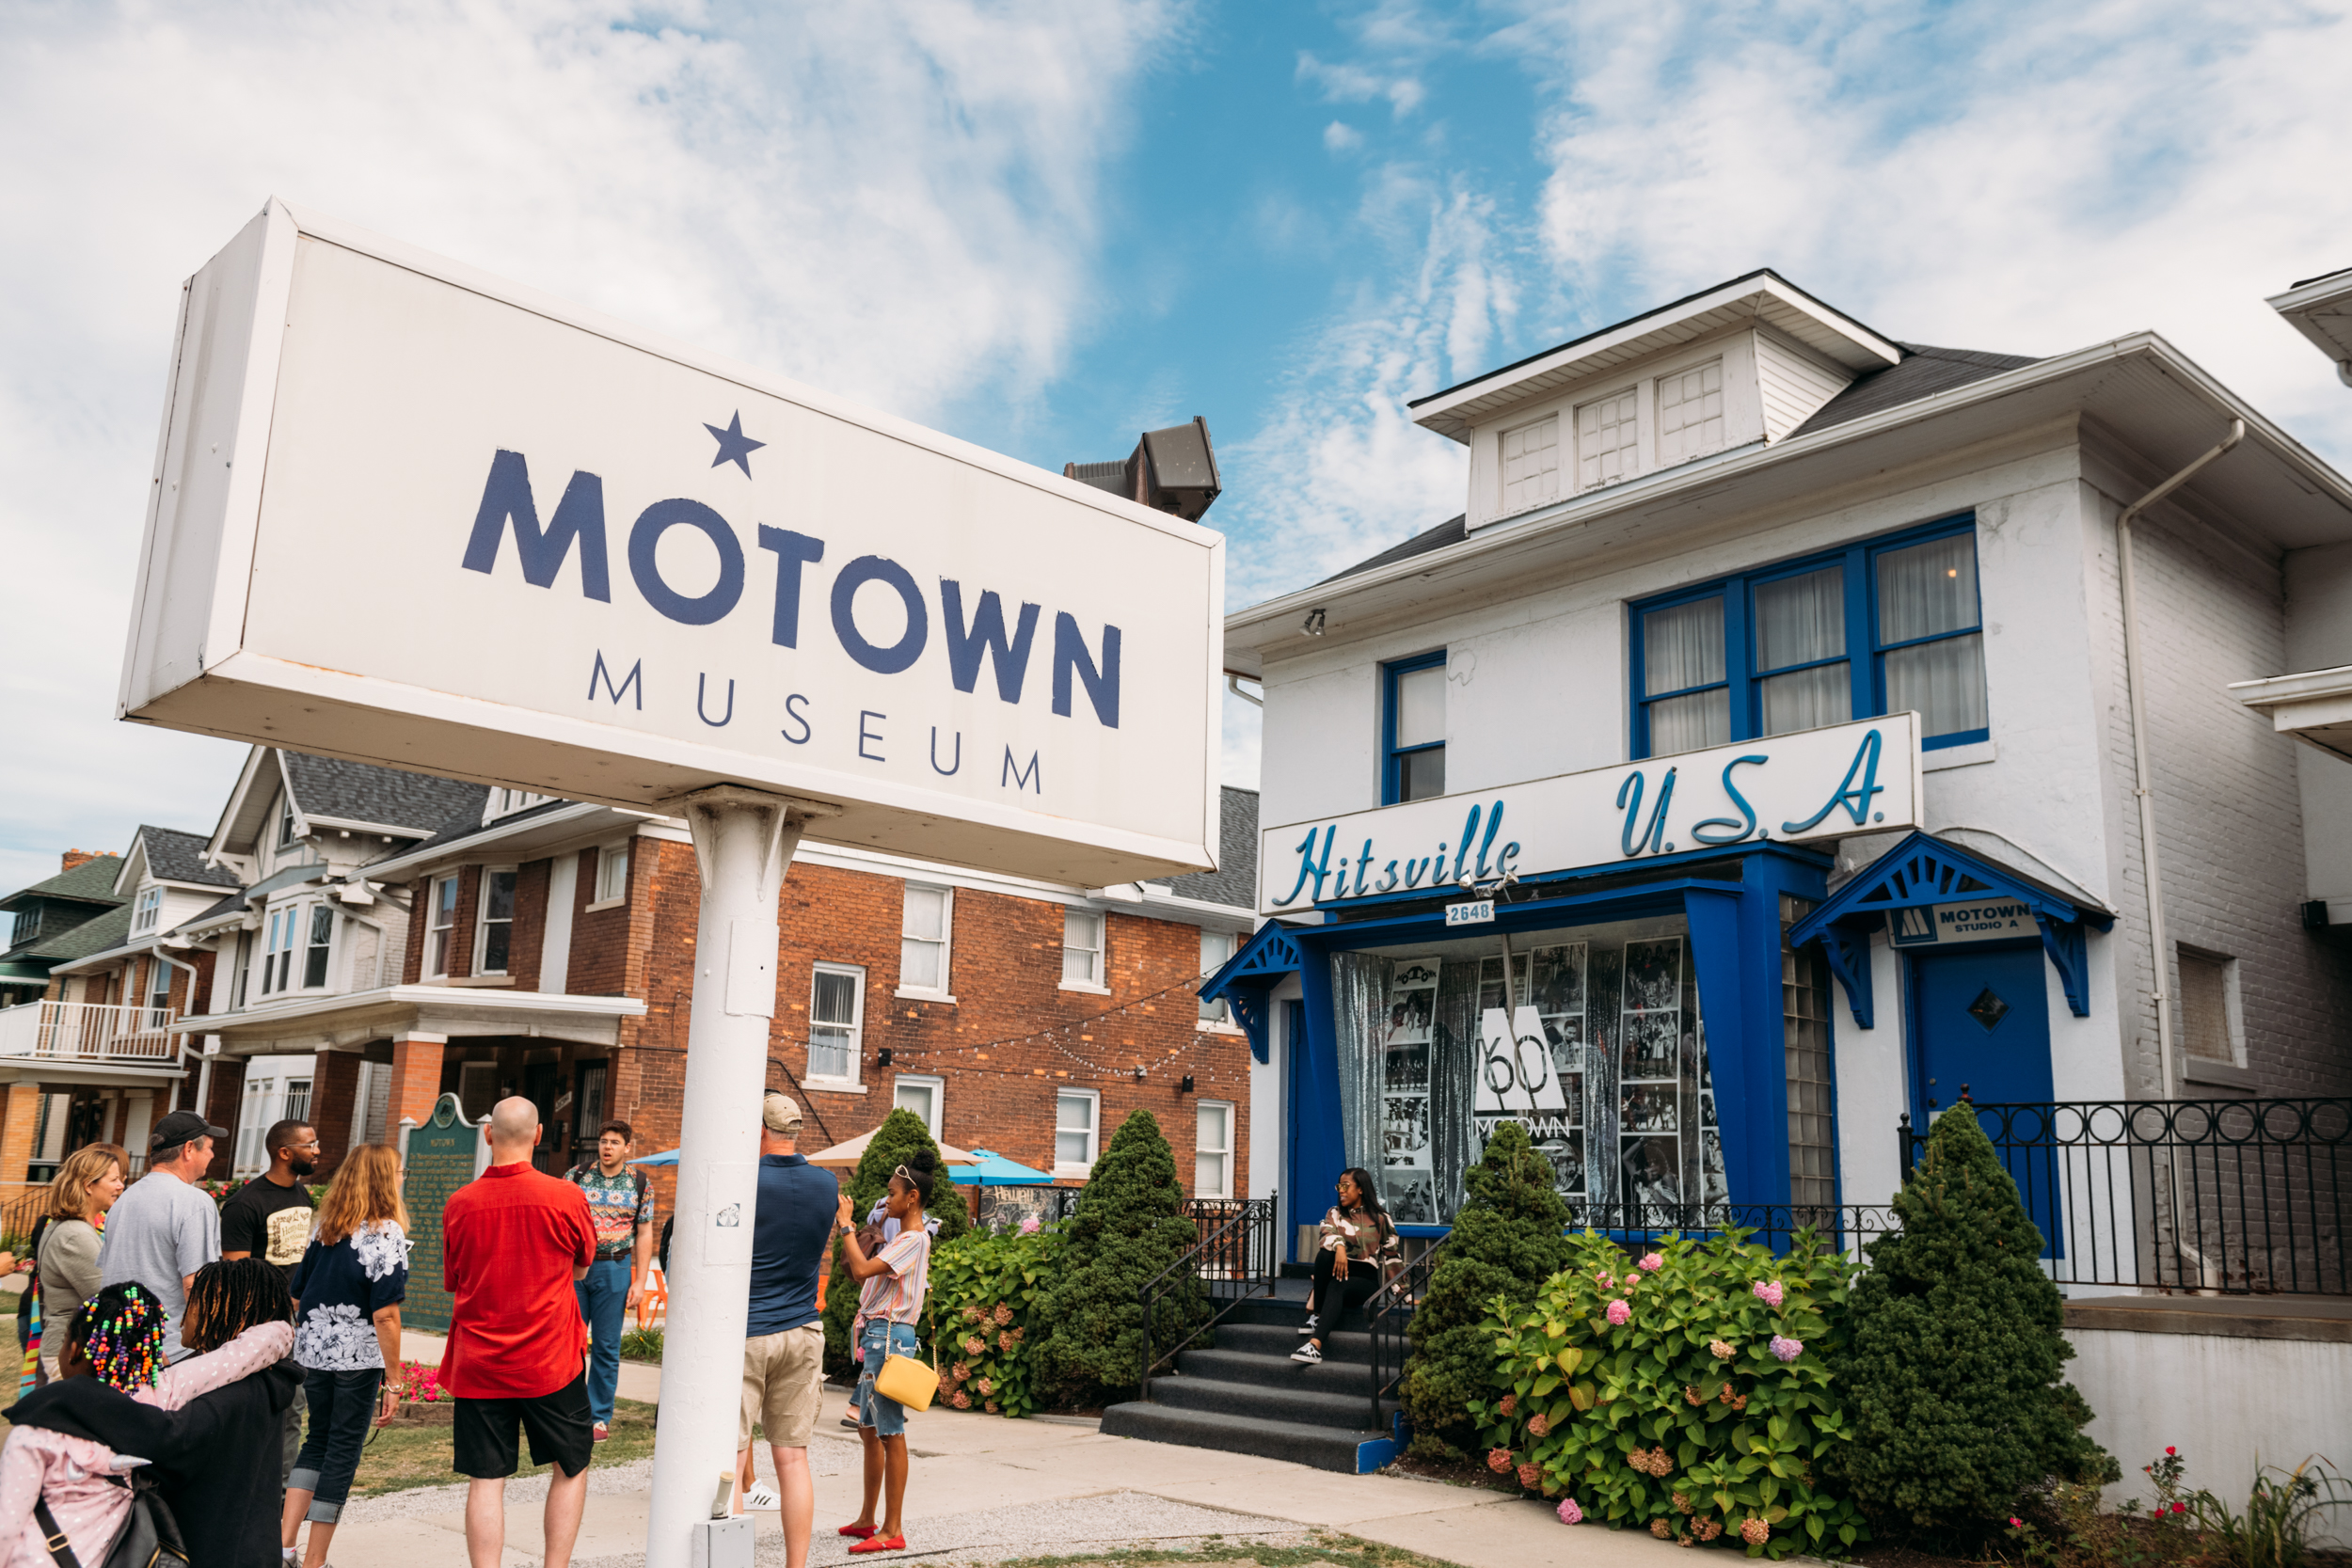 A front view of the Motown Museum during our Black History Tour